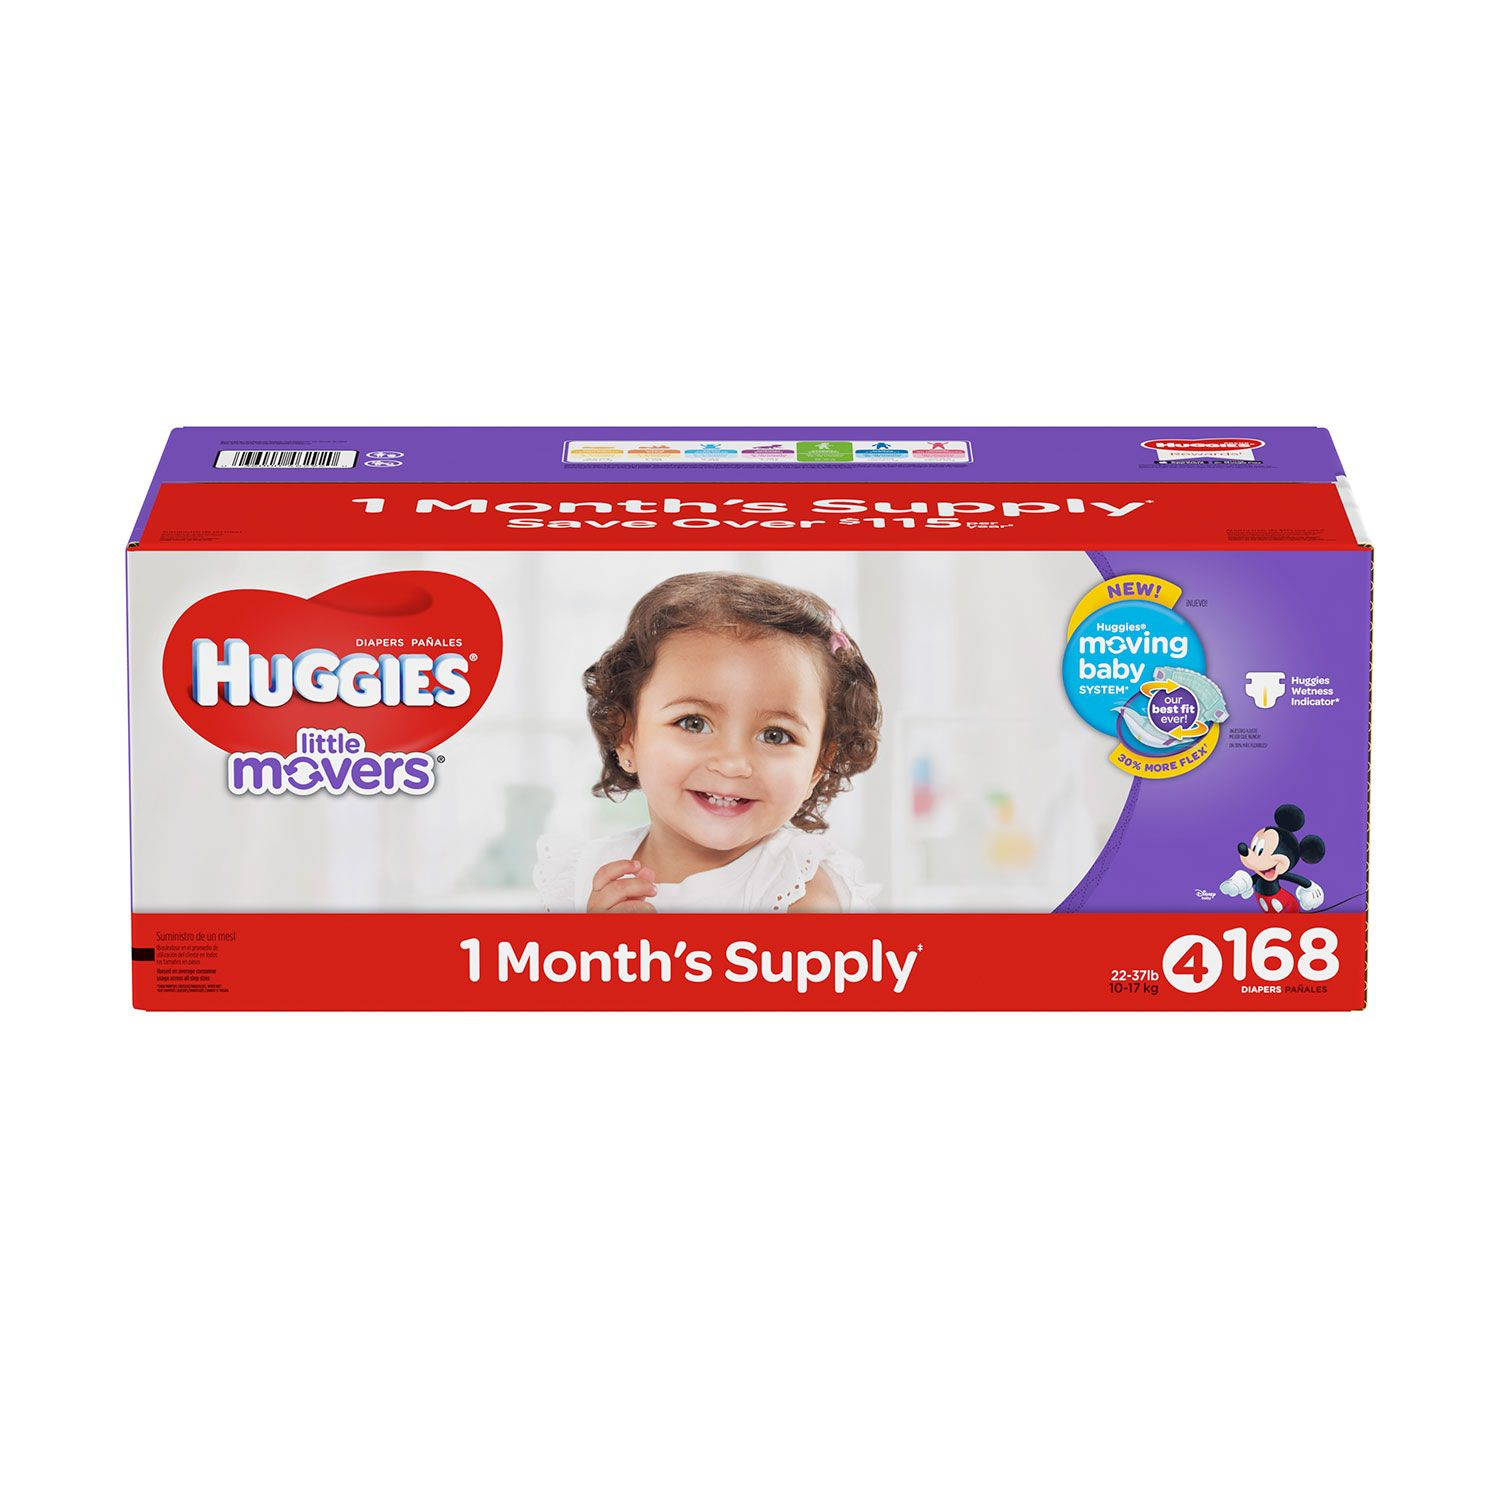 Huggies Little Movers Diapers (Size 4, 168 ct.)